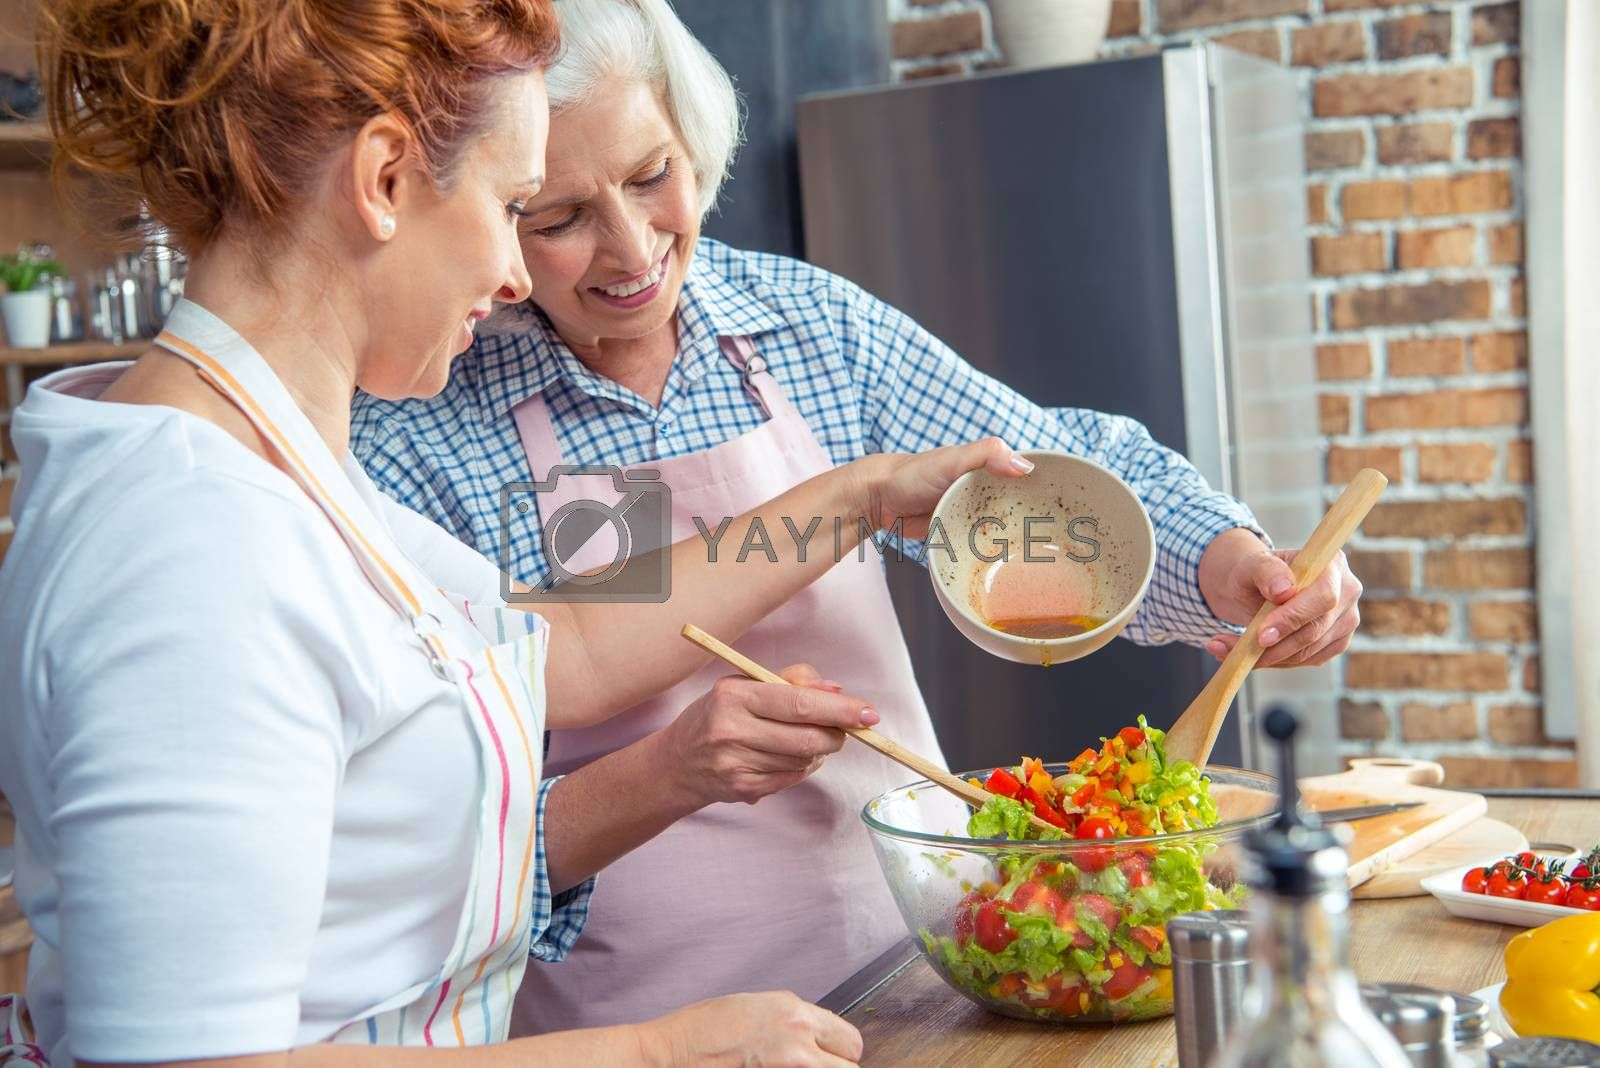 Two smiling women cooking vegetable salad together